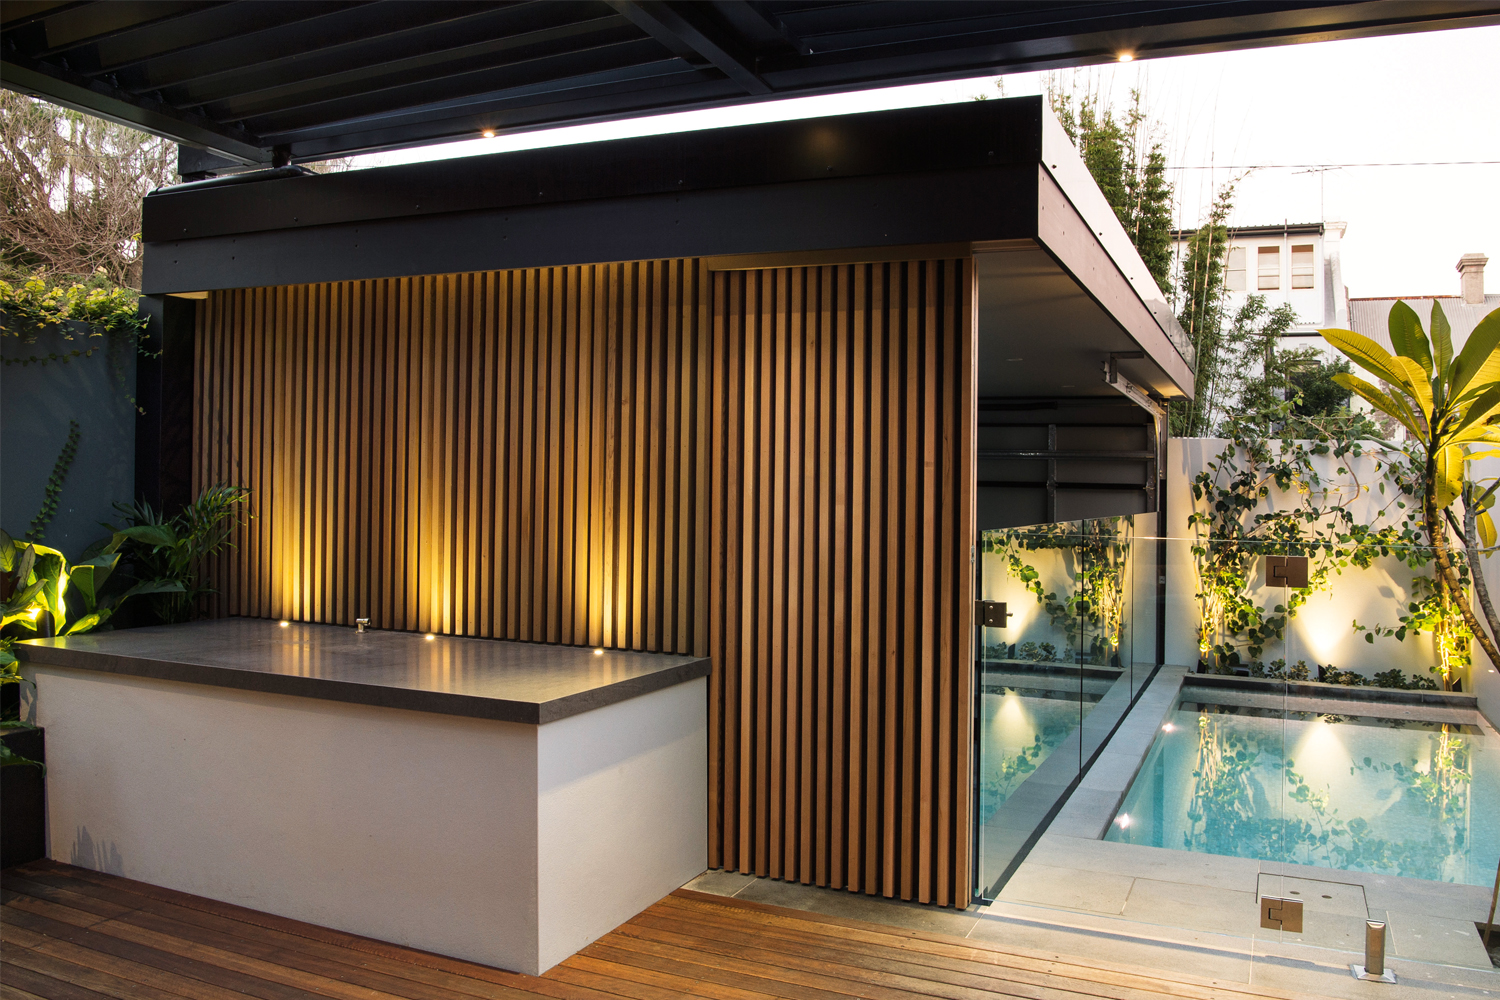 Dive deep into pool & spa design